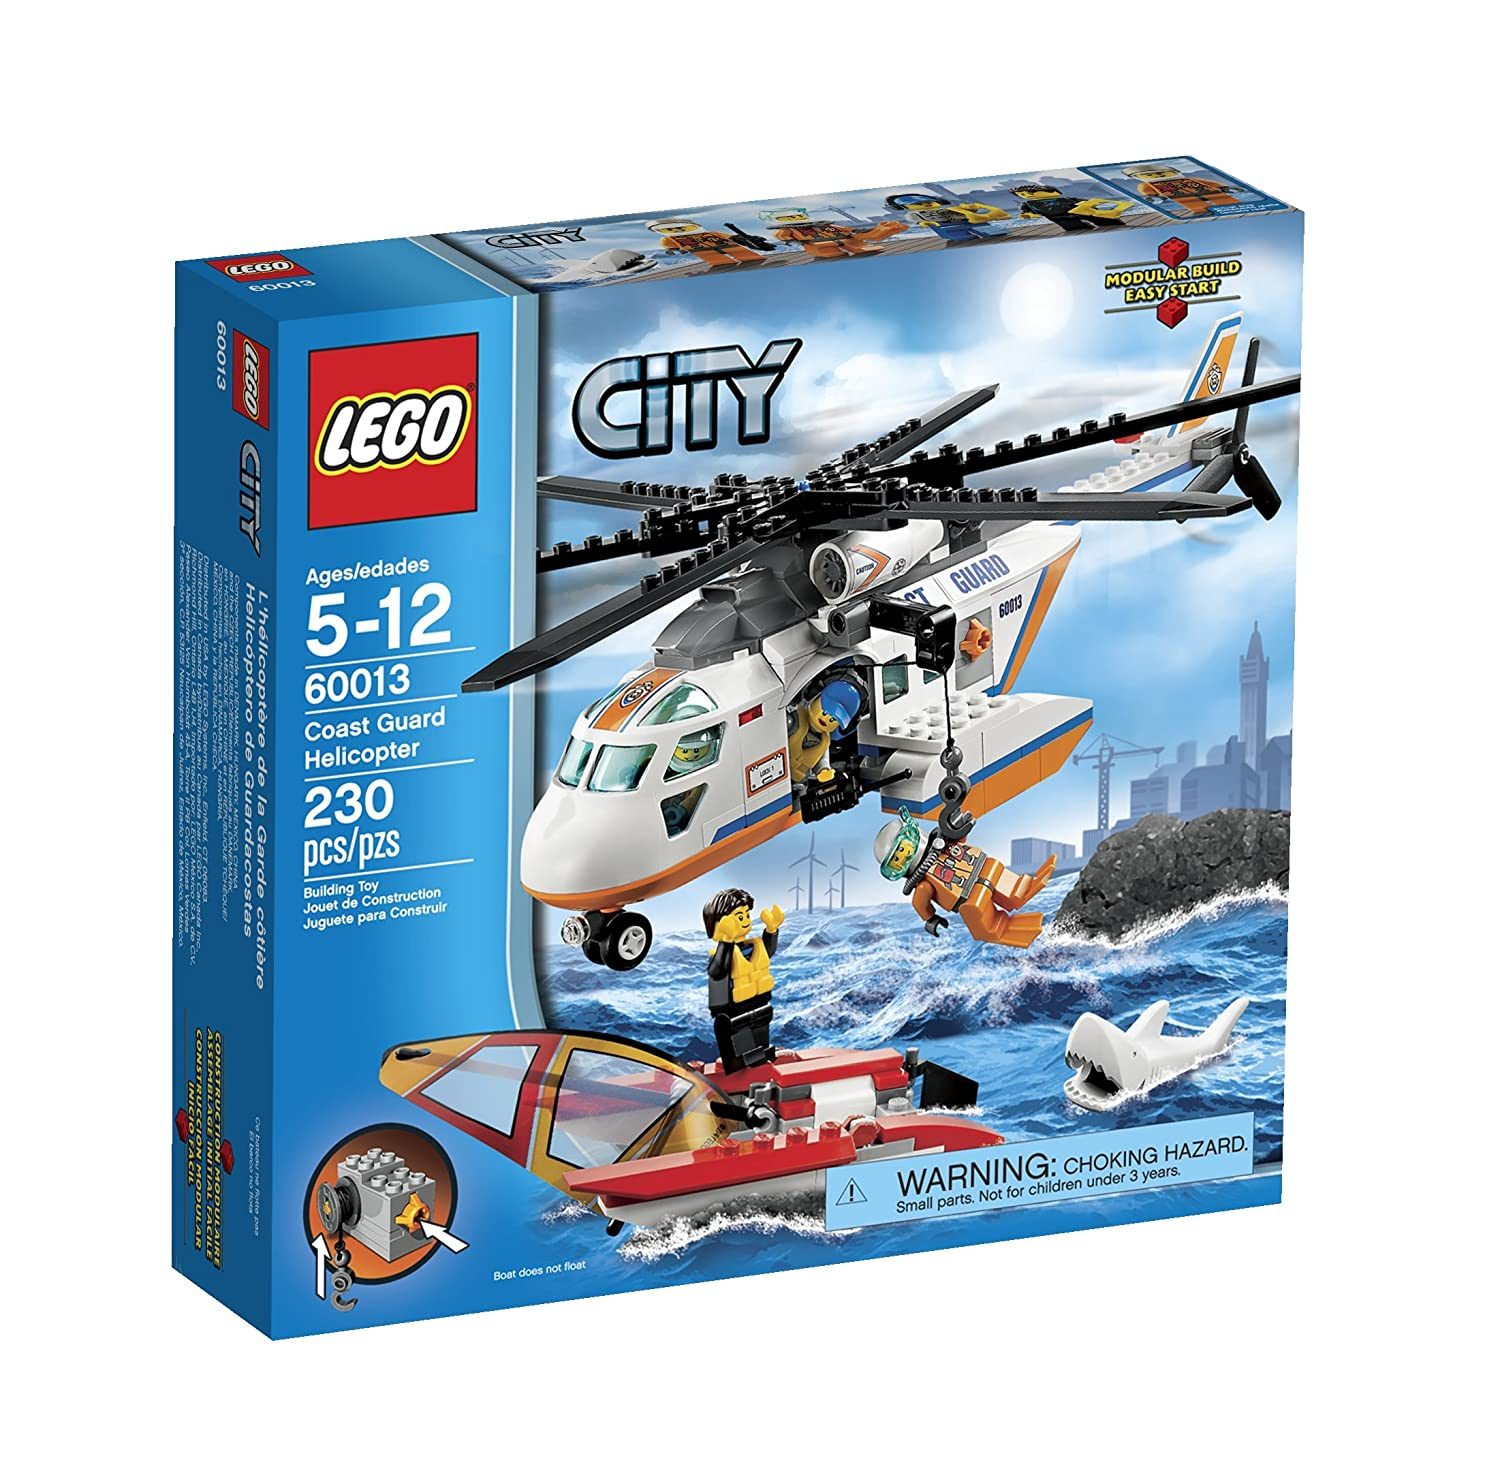 Top 9 Best LEGO Helicopter Sets Reviews in 2021 11